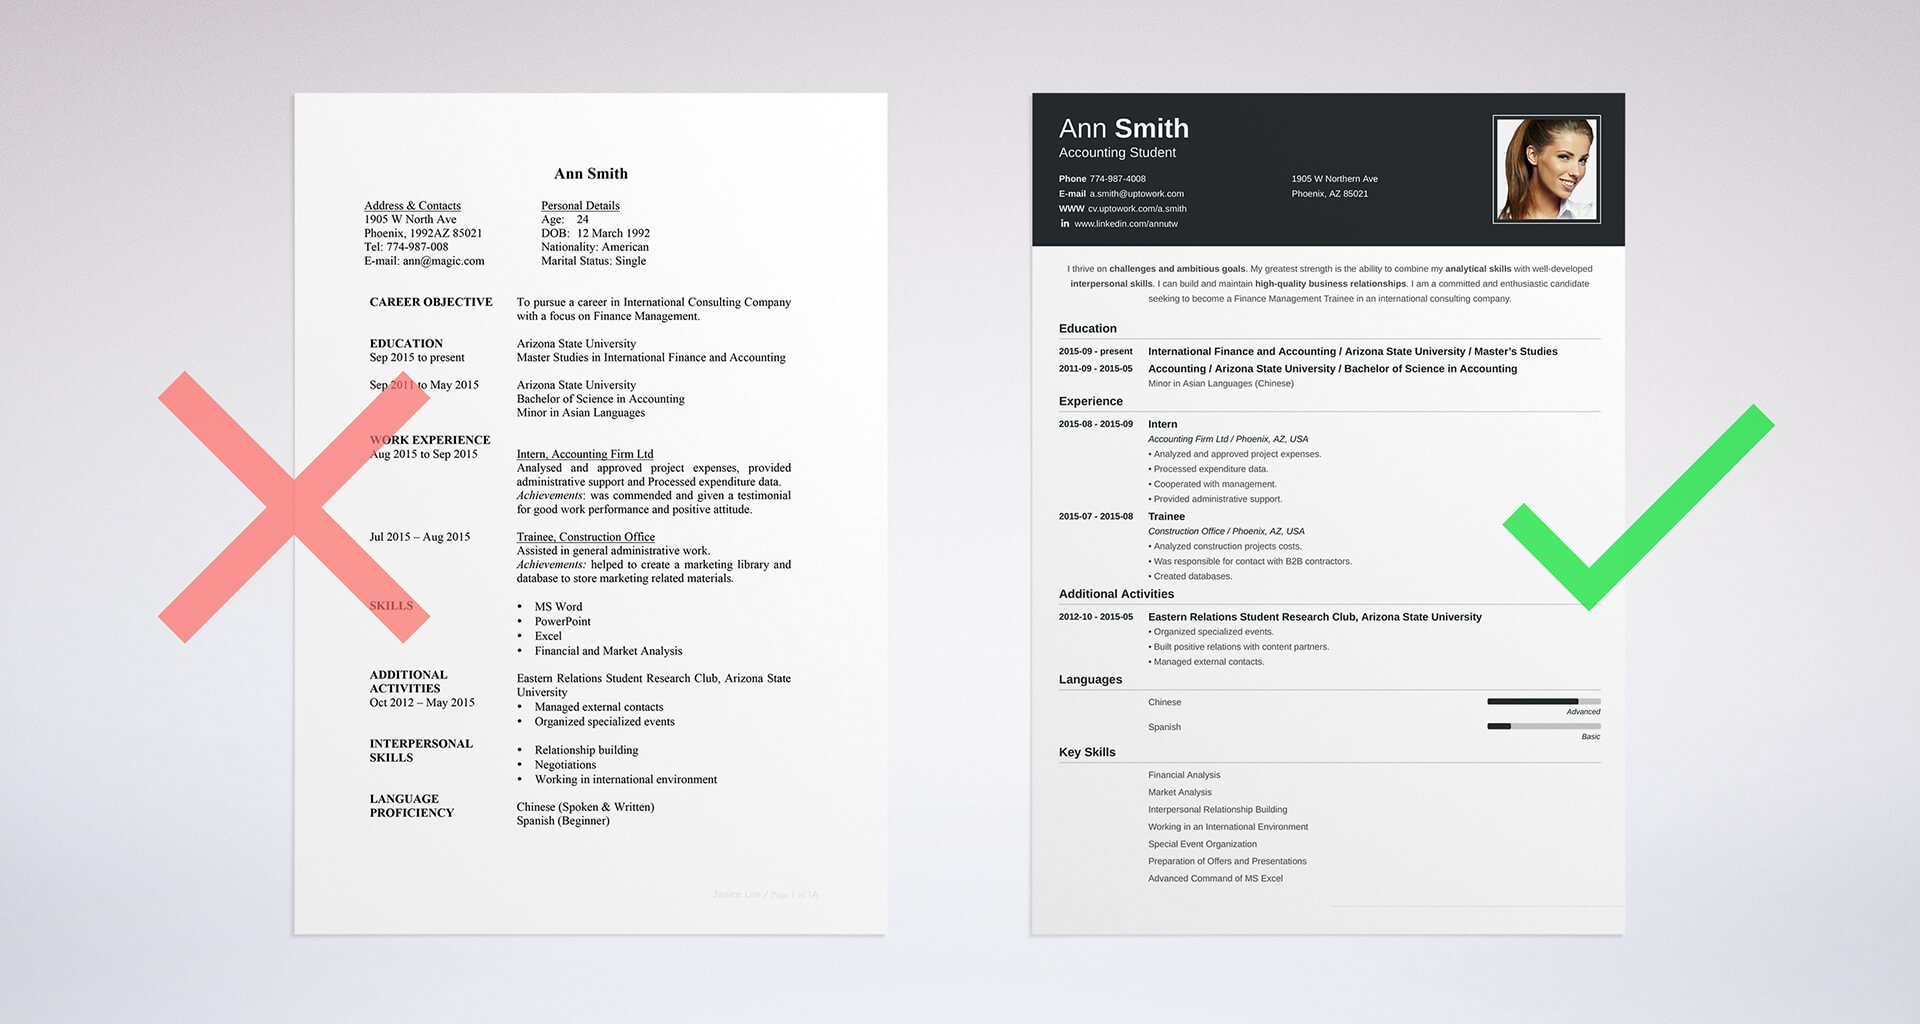 Elegant +20 Resume Objective Examples   Use Them On Your Resume (Tips) Within What Is A Objective On A Resume